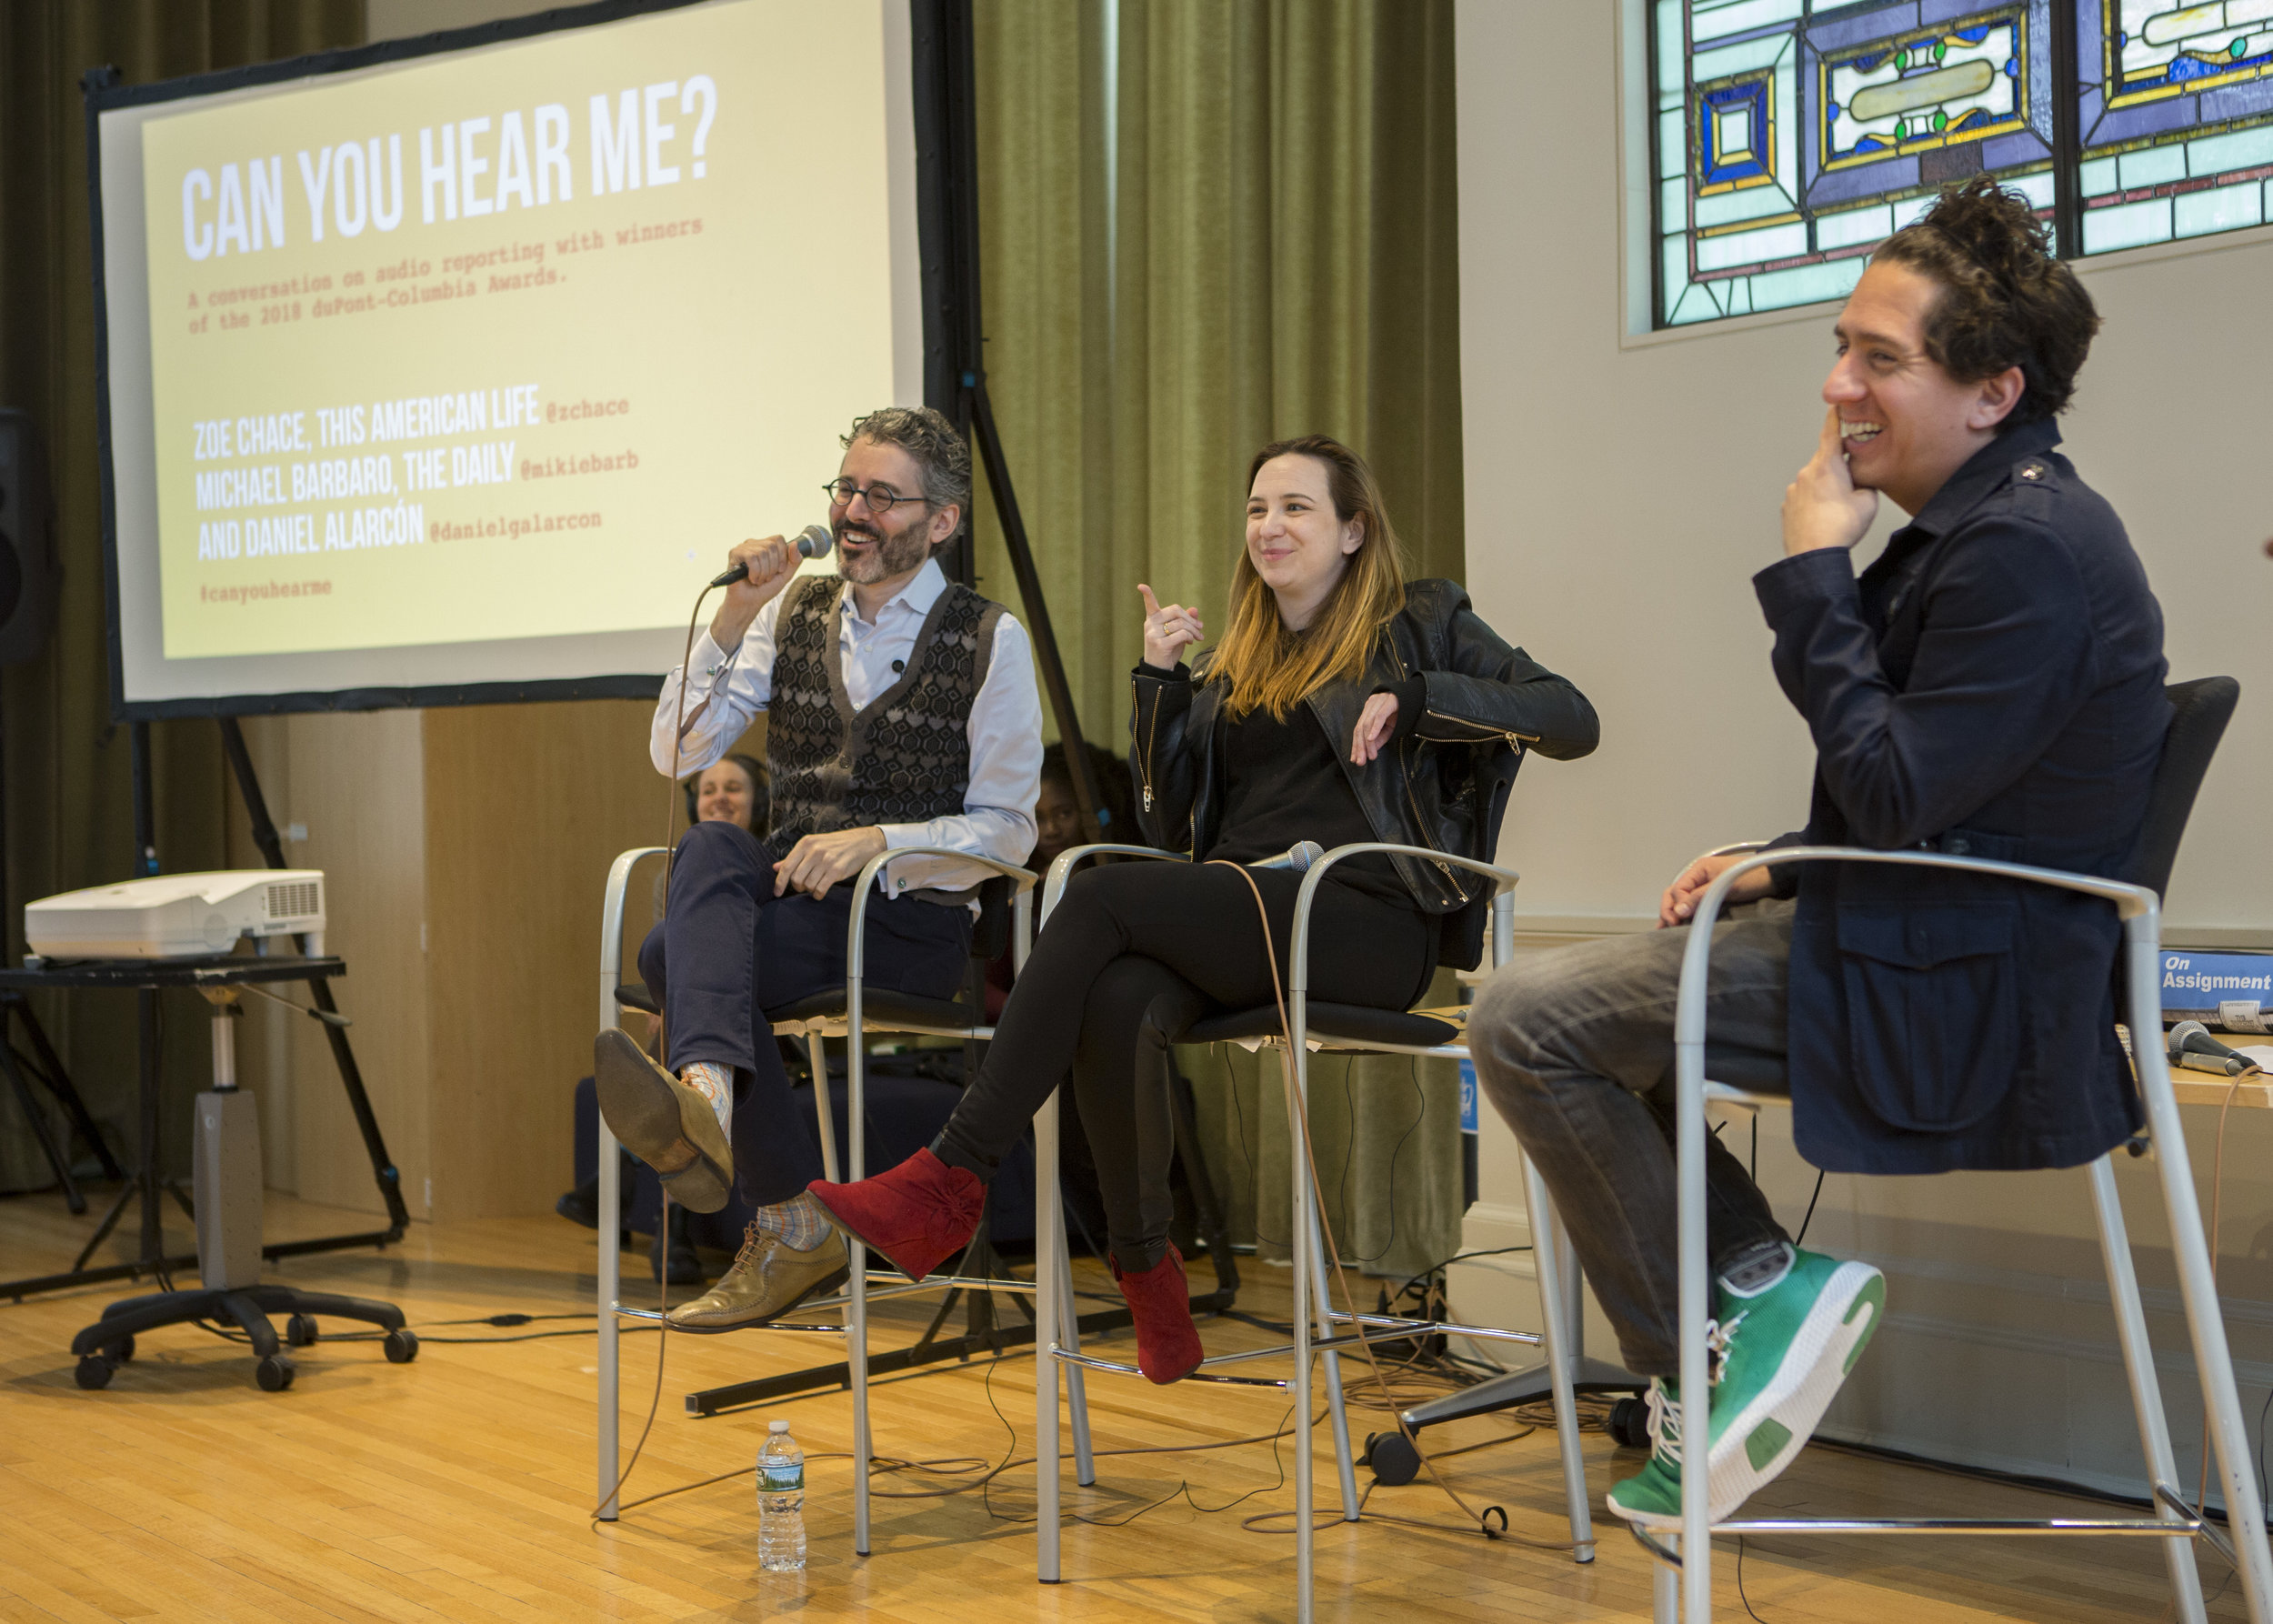 Michael Barbaro, Zoe Chace and Daniel Alarcón talk about audio reporting at Columbia Journalism School.